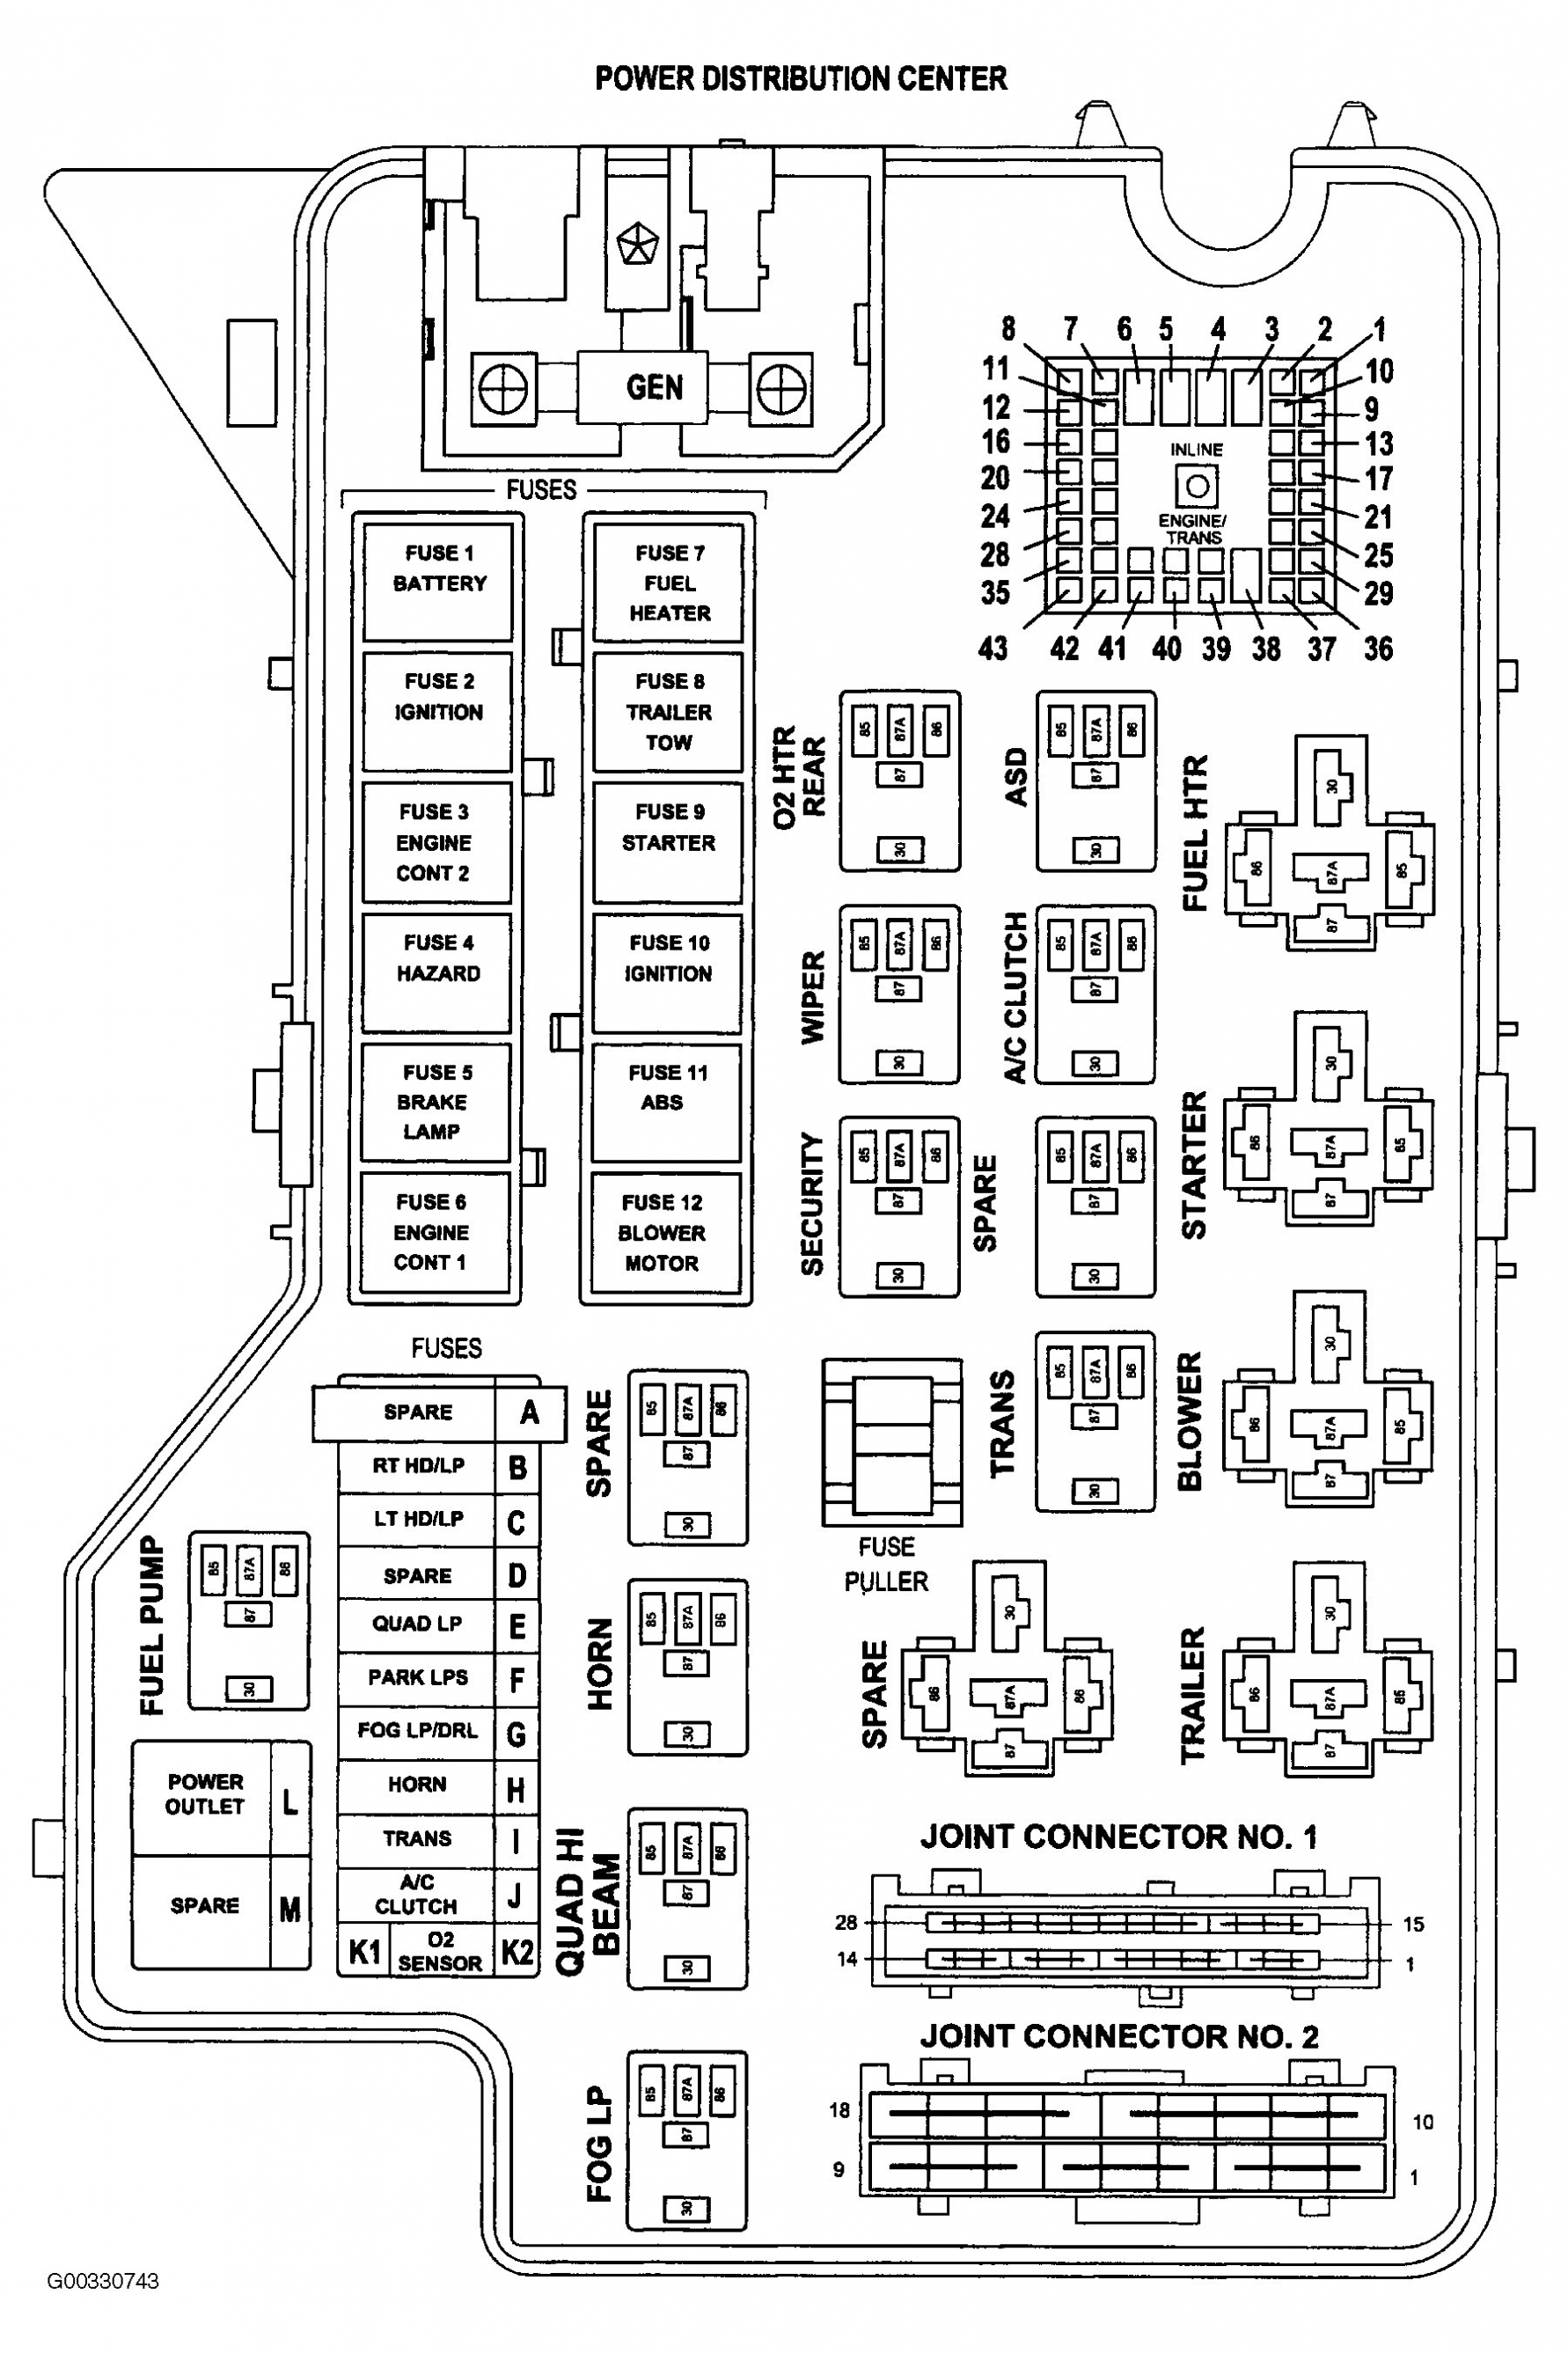 2005 Dodge Durango Interior Fuse Box Diagram